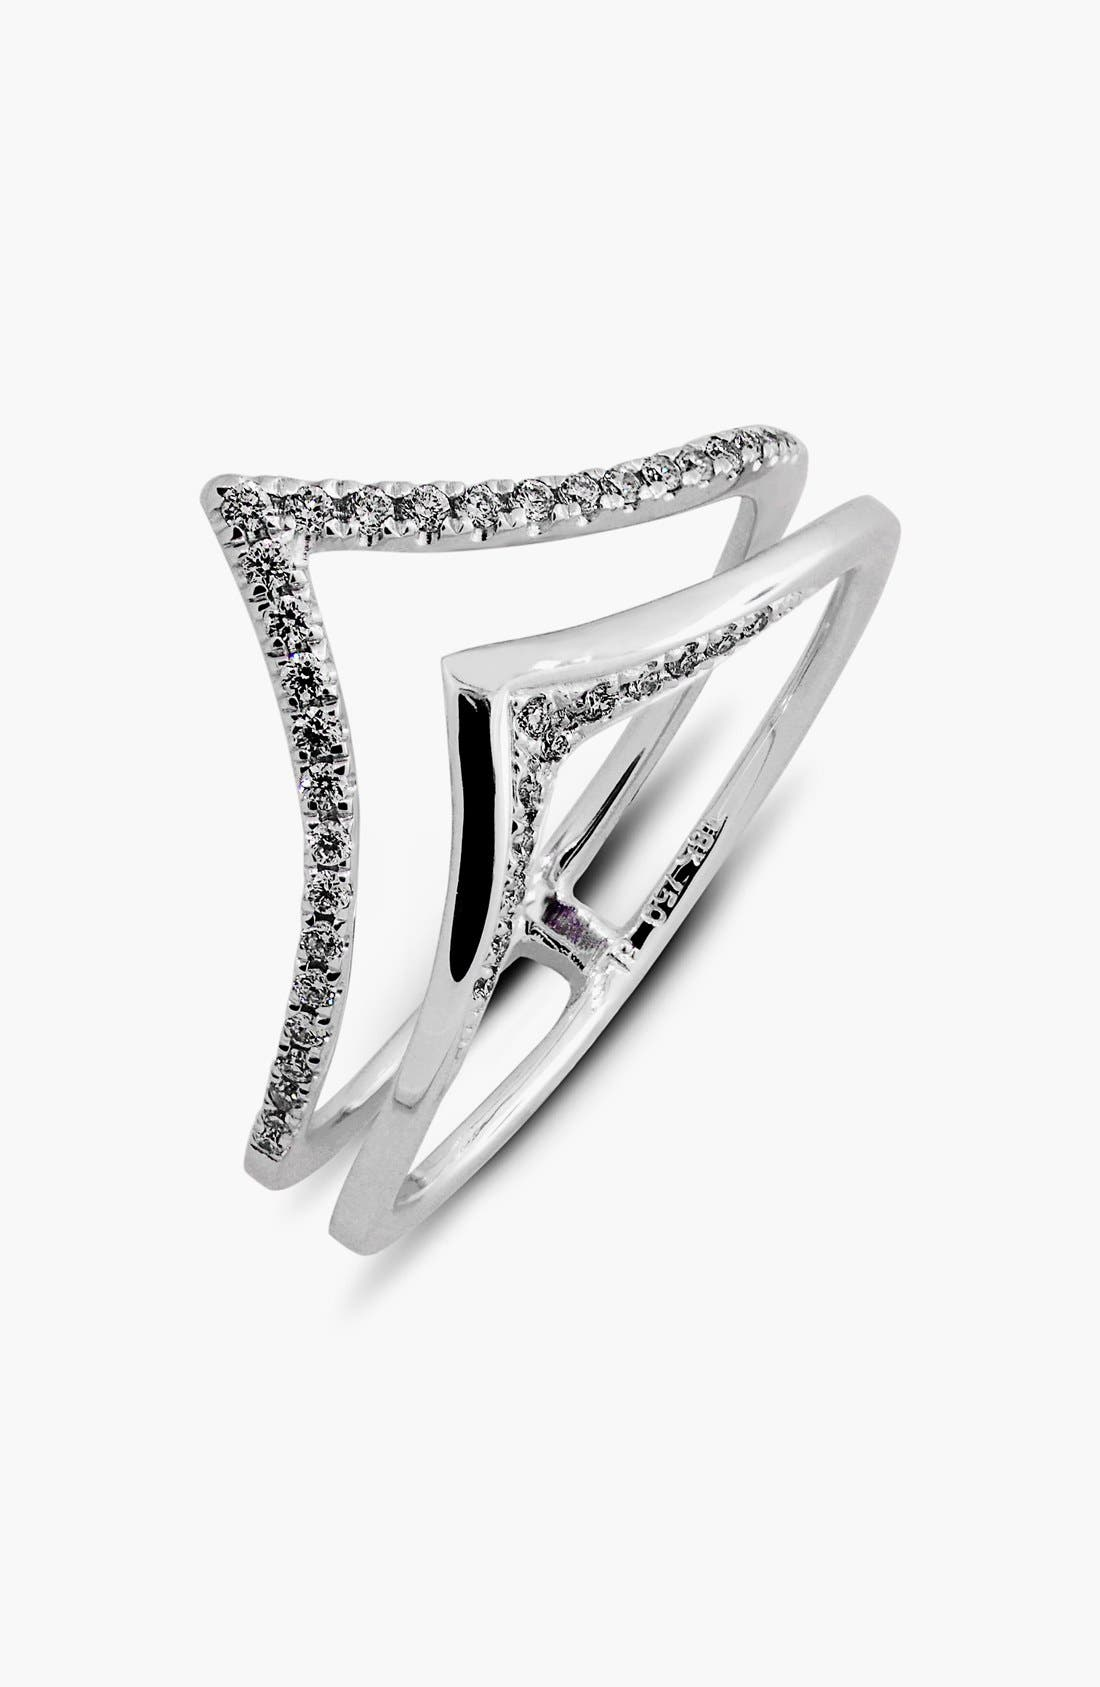 Main Image - Bony Levy Prism Chevron Diamond Ring (Limited Edition) (Nordstrom Exclusive)